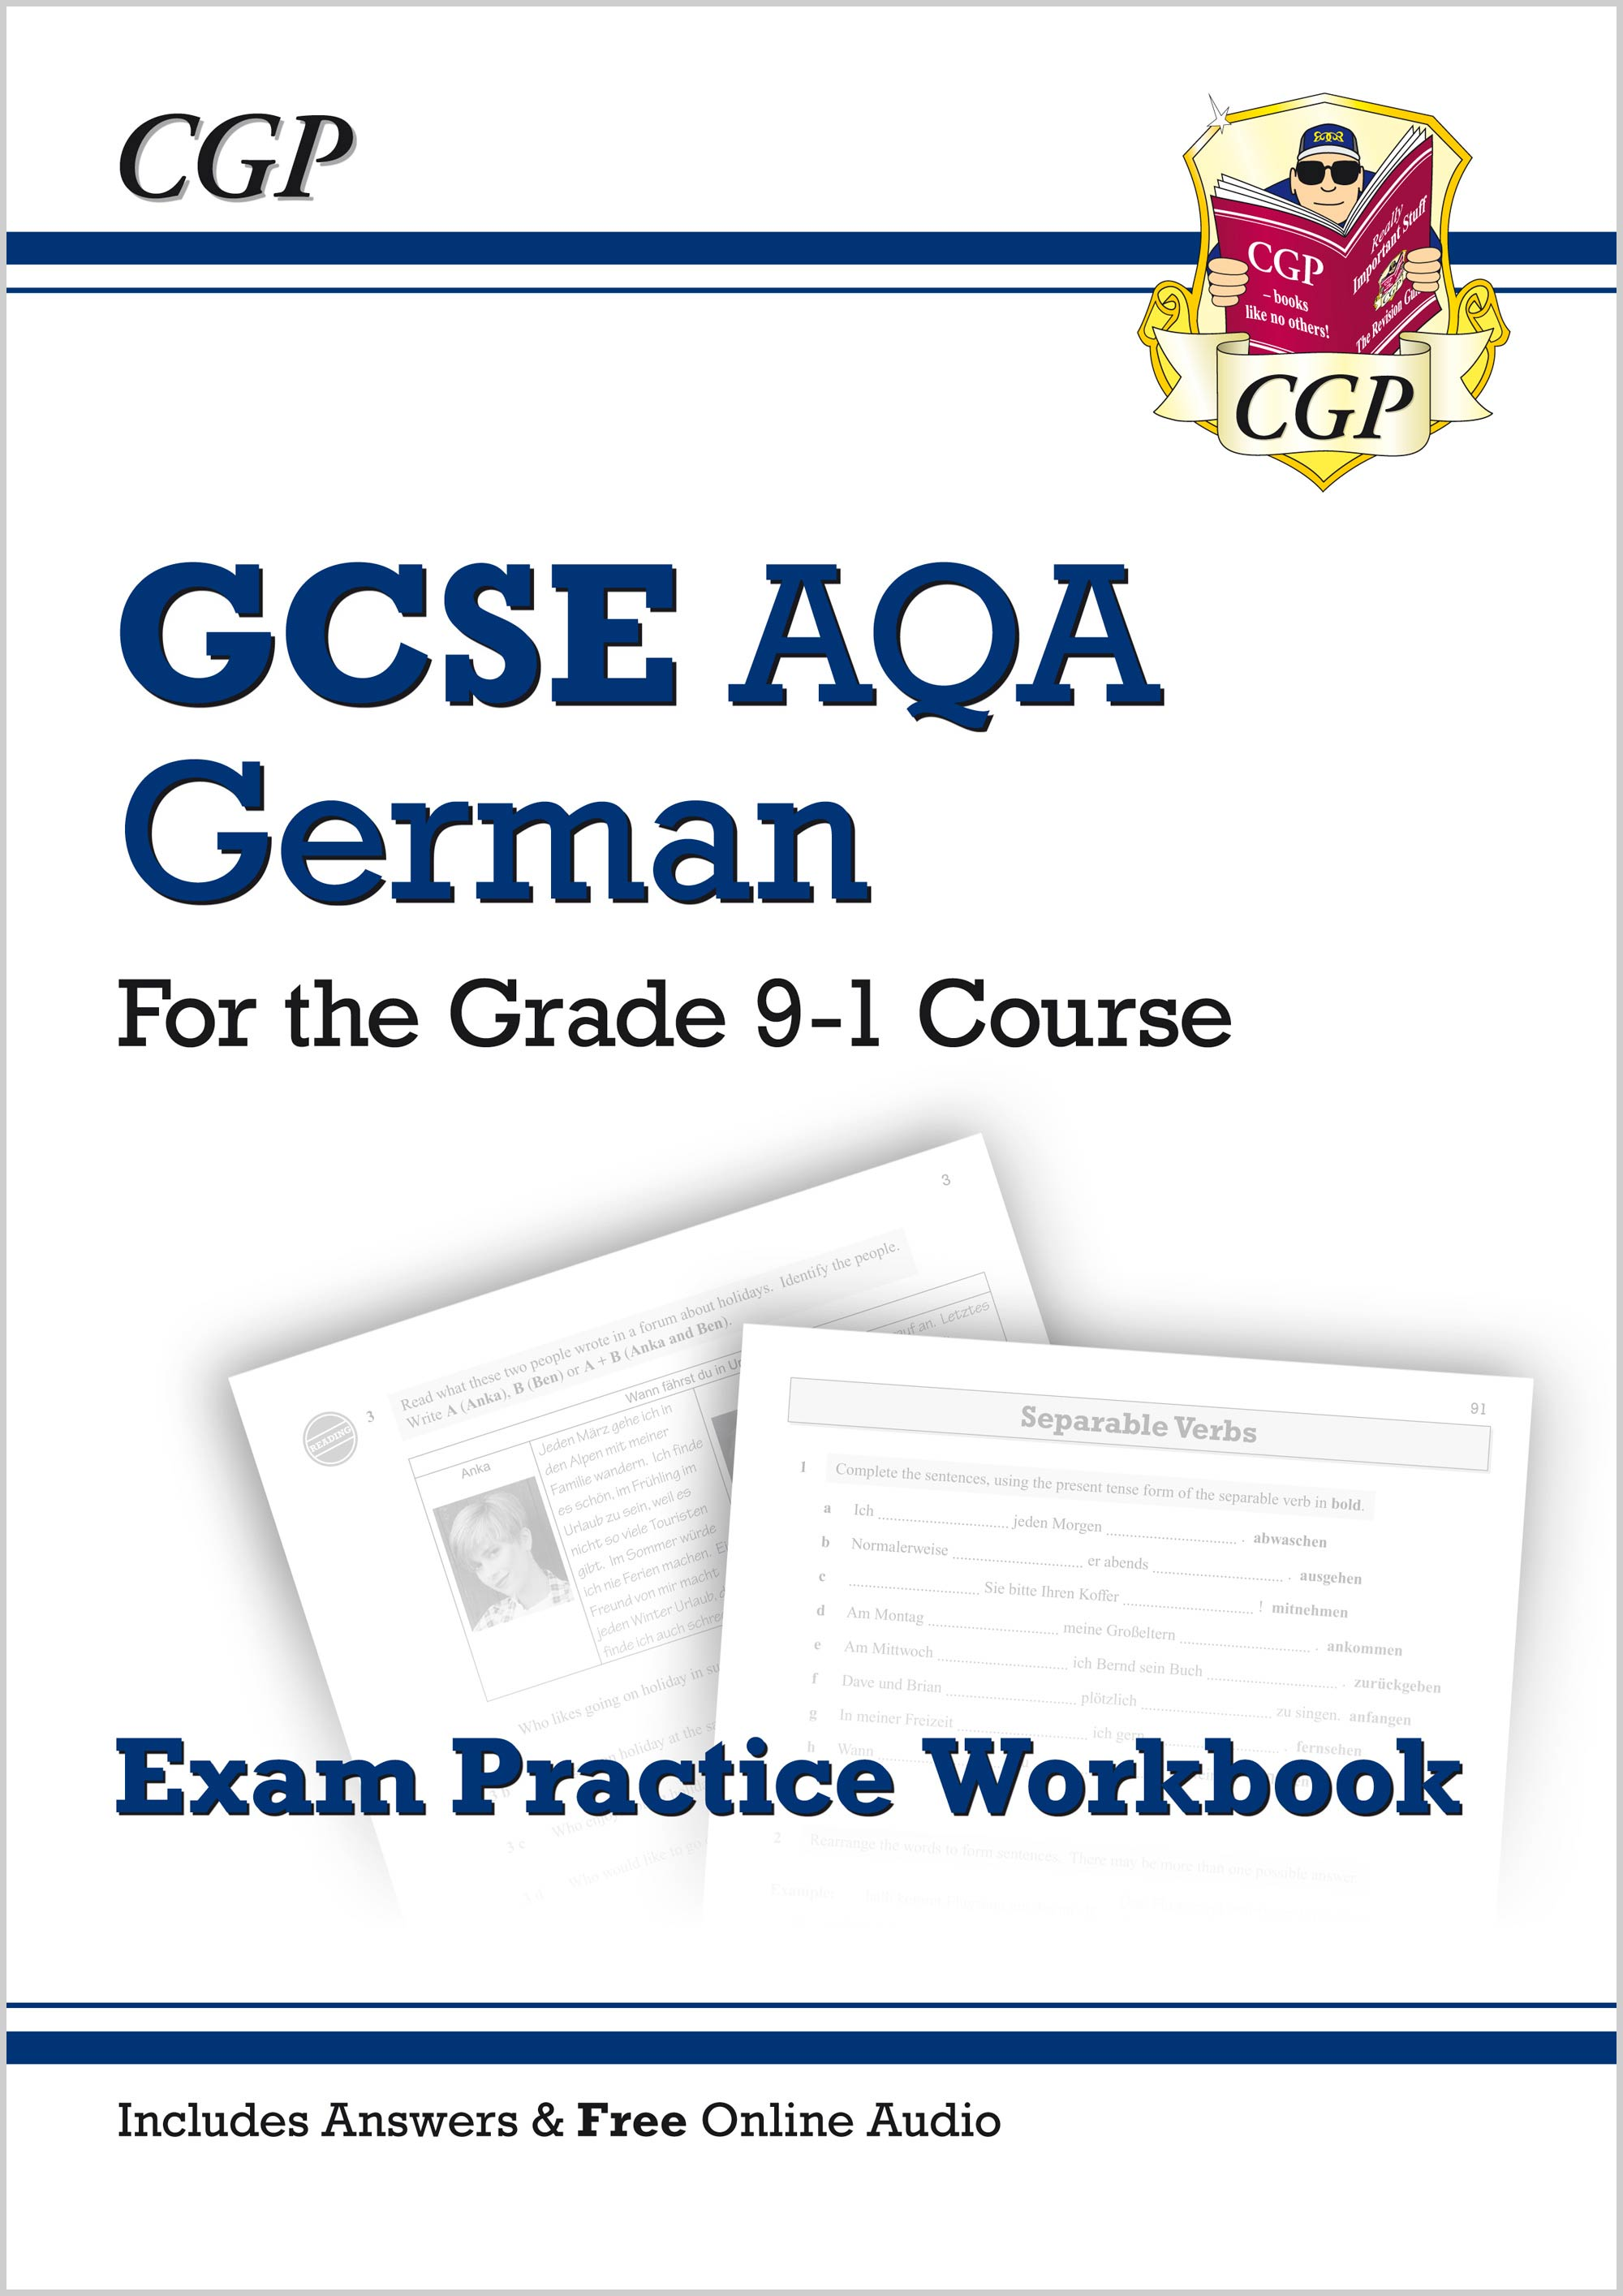 DAQ41 - New GCSE German AQA Exam Practice Workbook - for the Grade 9-1 Course (includes Answers)